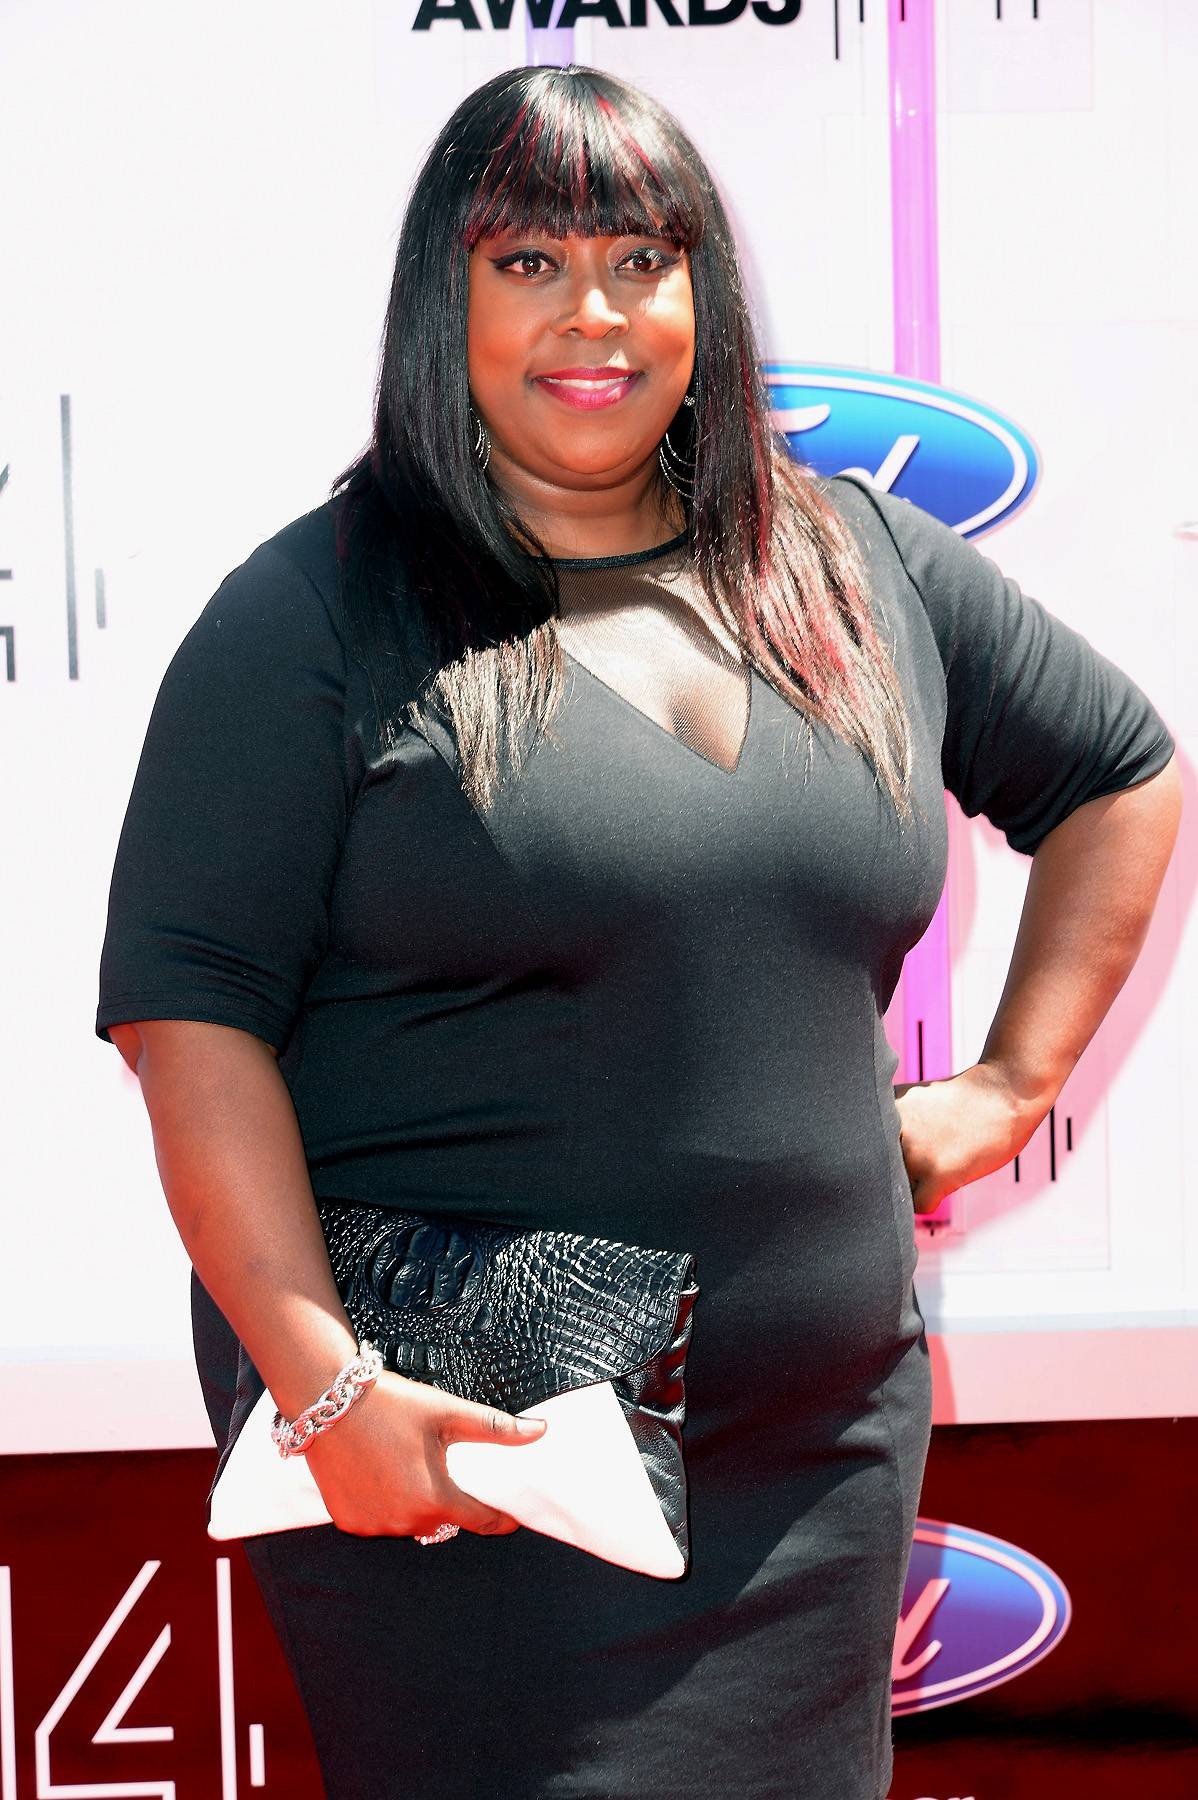 """Loni's Love Advice - Last year Loni released her first book entitled Love Him Or Leave Him But Don't Get Stuck With the Tab. After 20-something years of relationship experience, she's learned to do more than just dish advice, """"[she's] learned to actually follow [her] own..."""" Amen Loni, Amen! (Photo: Earl Gibson III/Getty Images for BET)"""